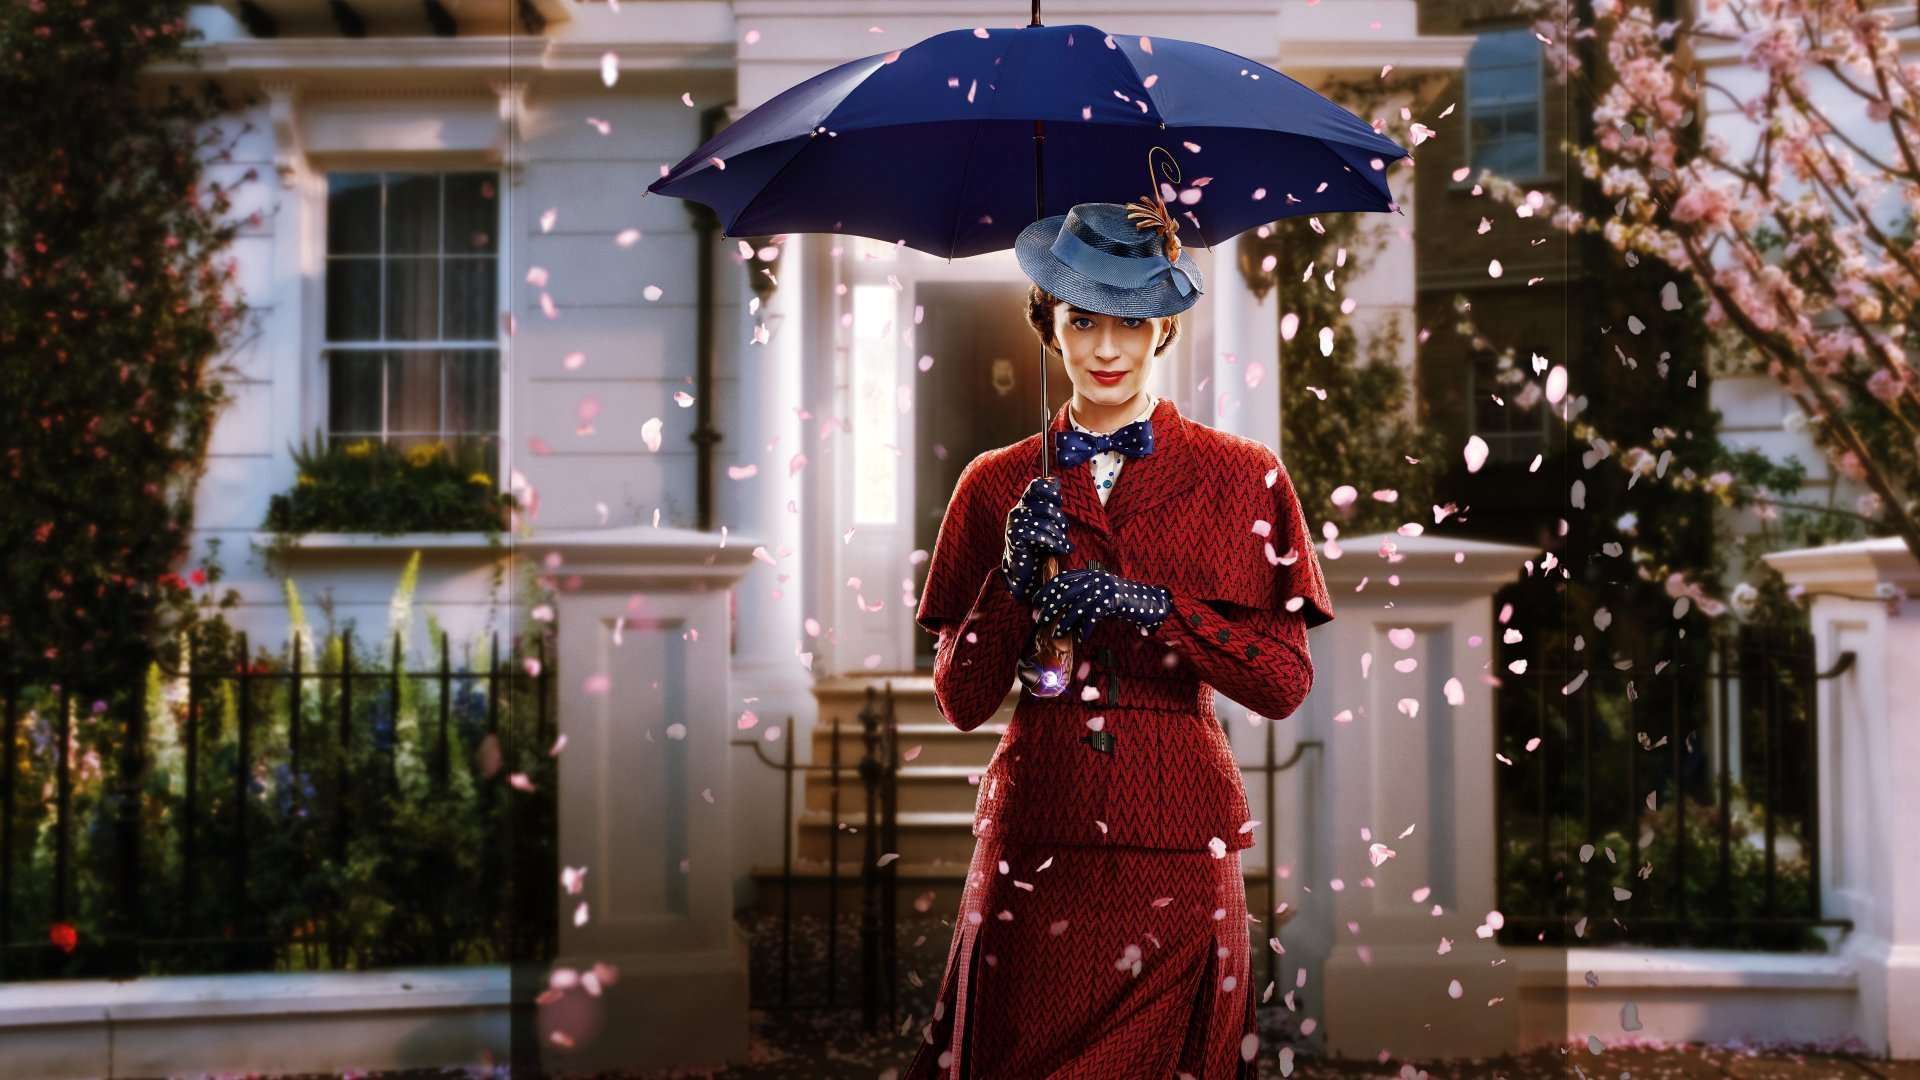 The poster for the Walt Disney film Mary Poppins Returns, which used Metro Rigging's services.